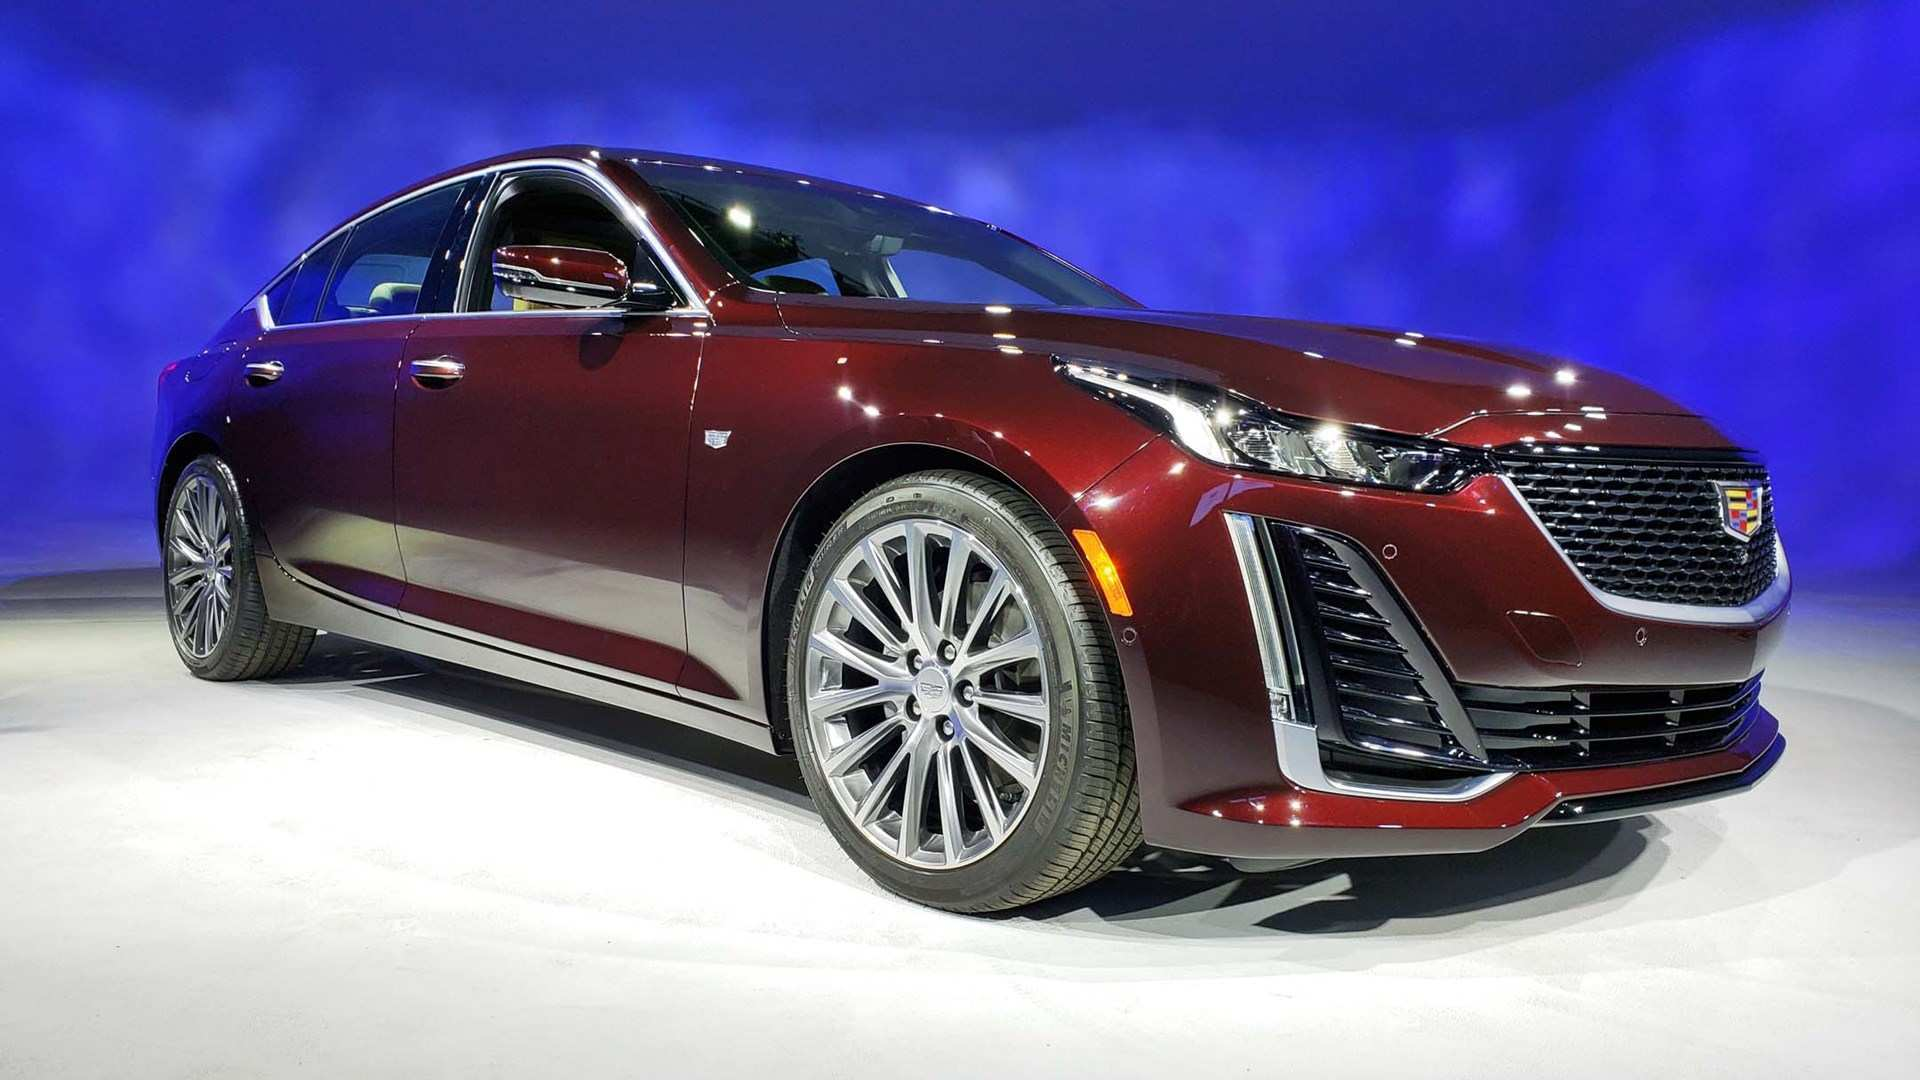 82 All New New Cadillac Sedans For 2020 Picture